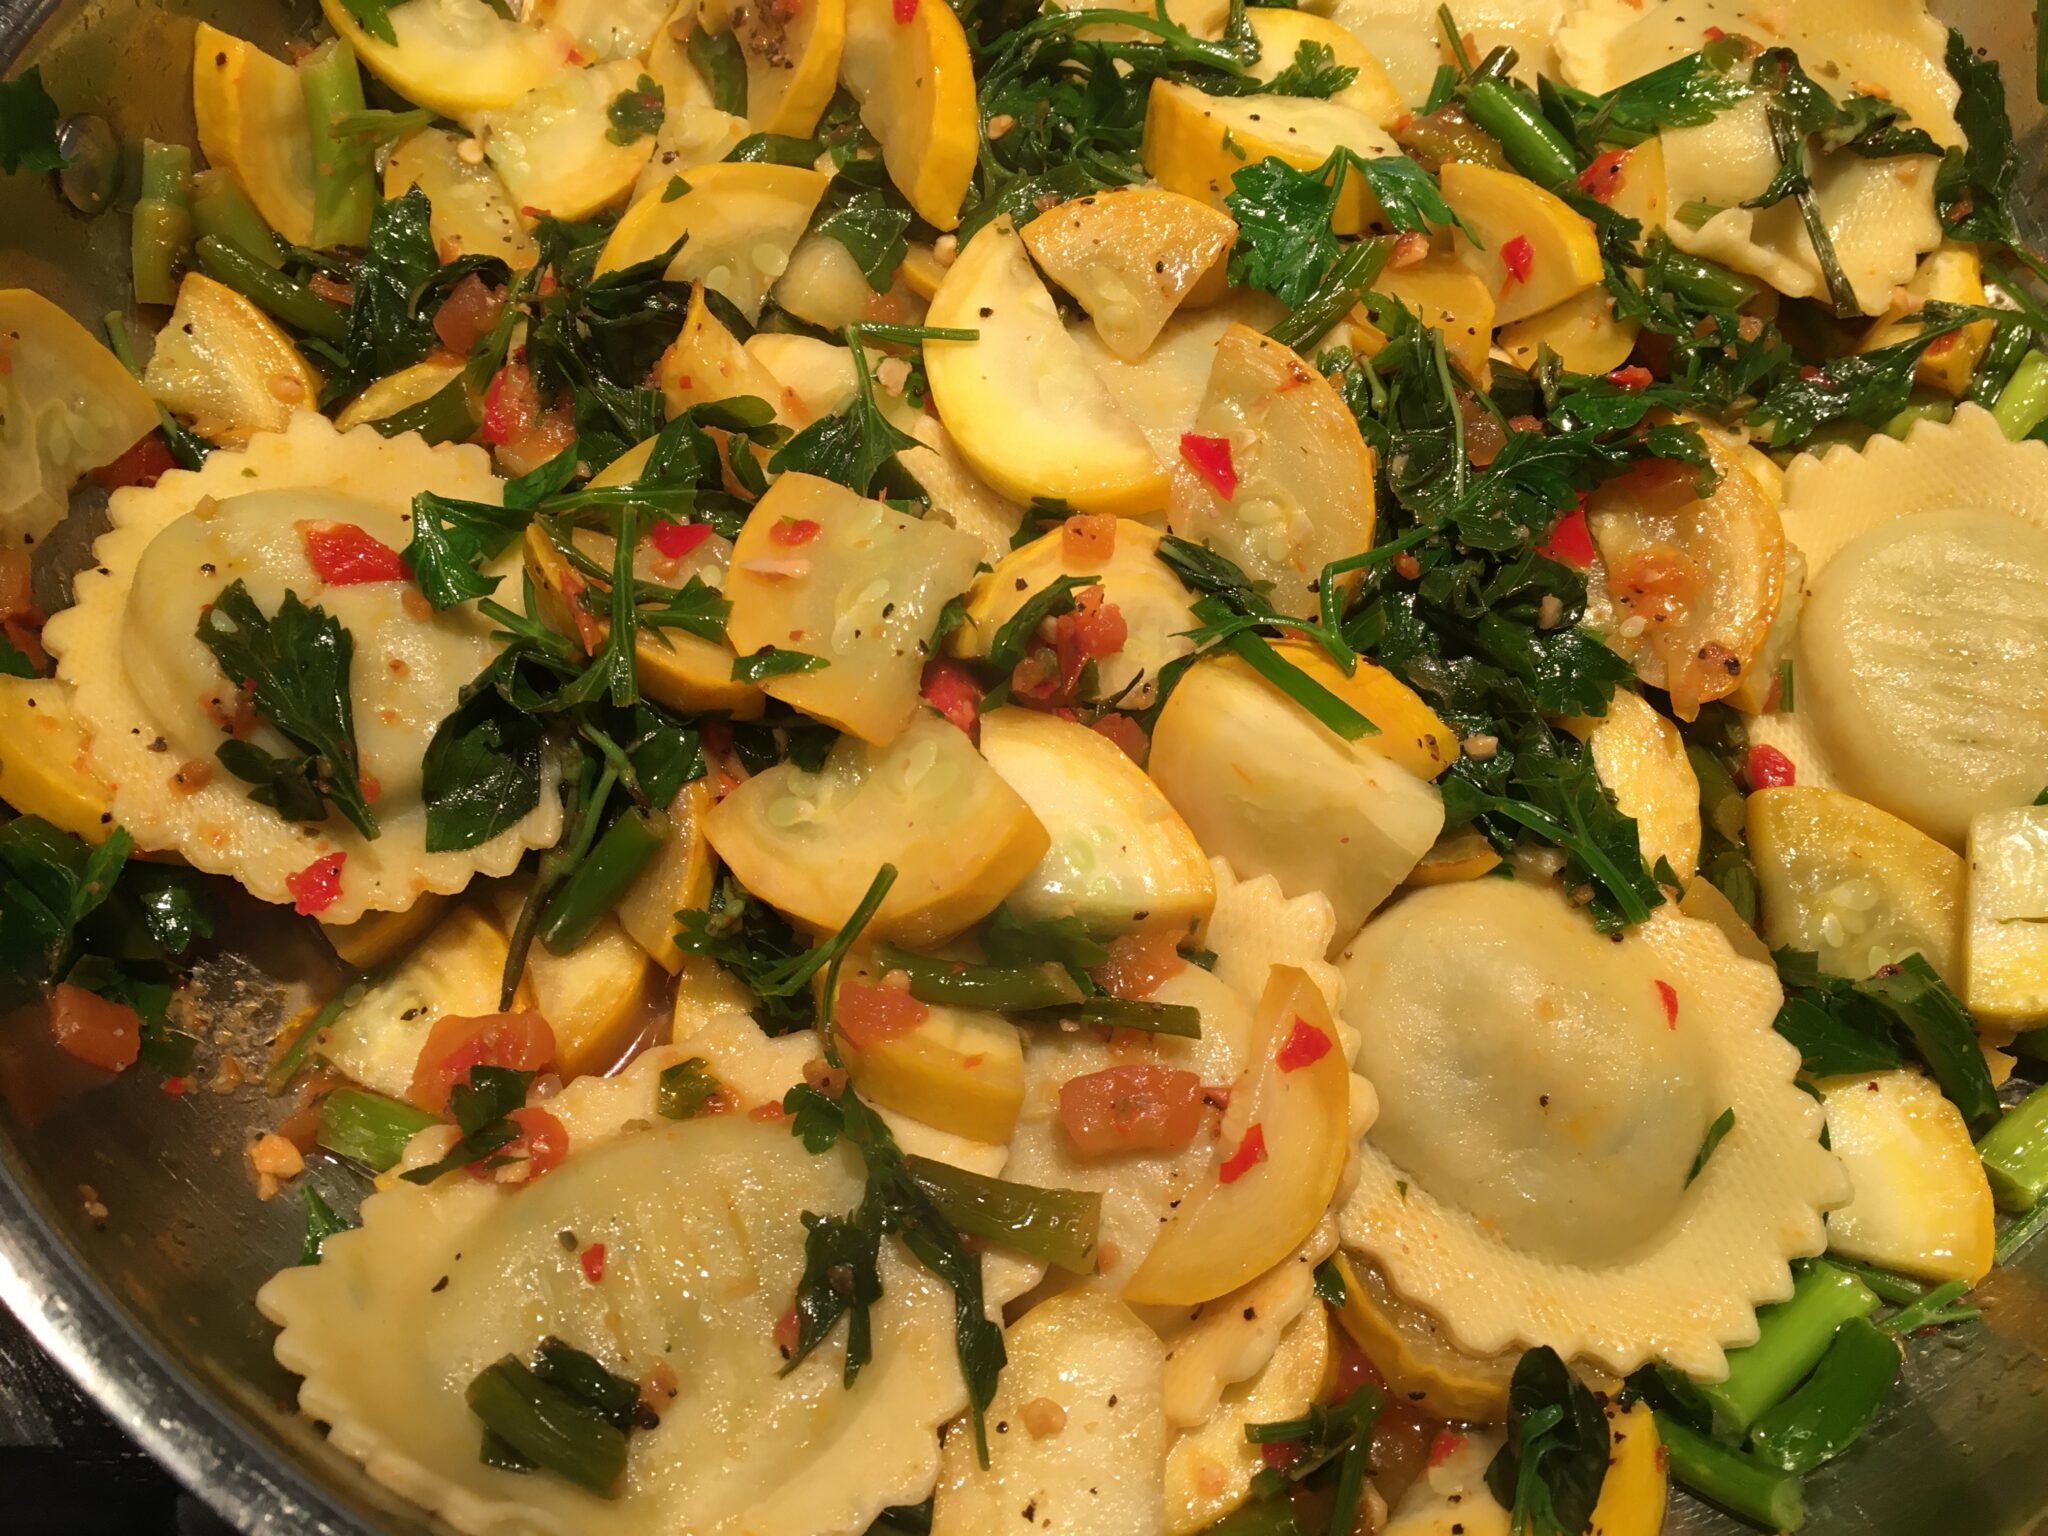 Ravioli with Fried Squash and Herbs